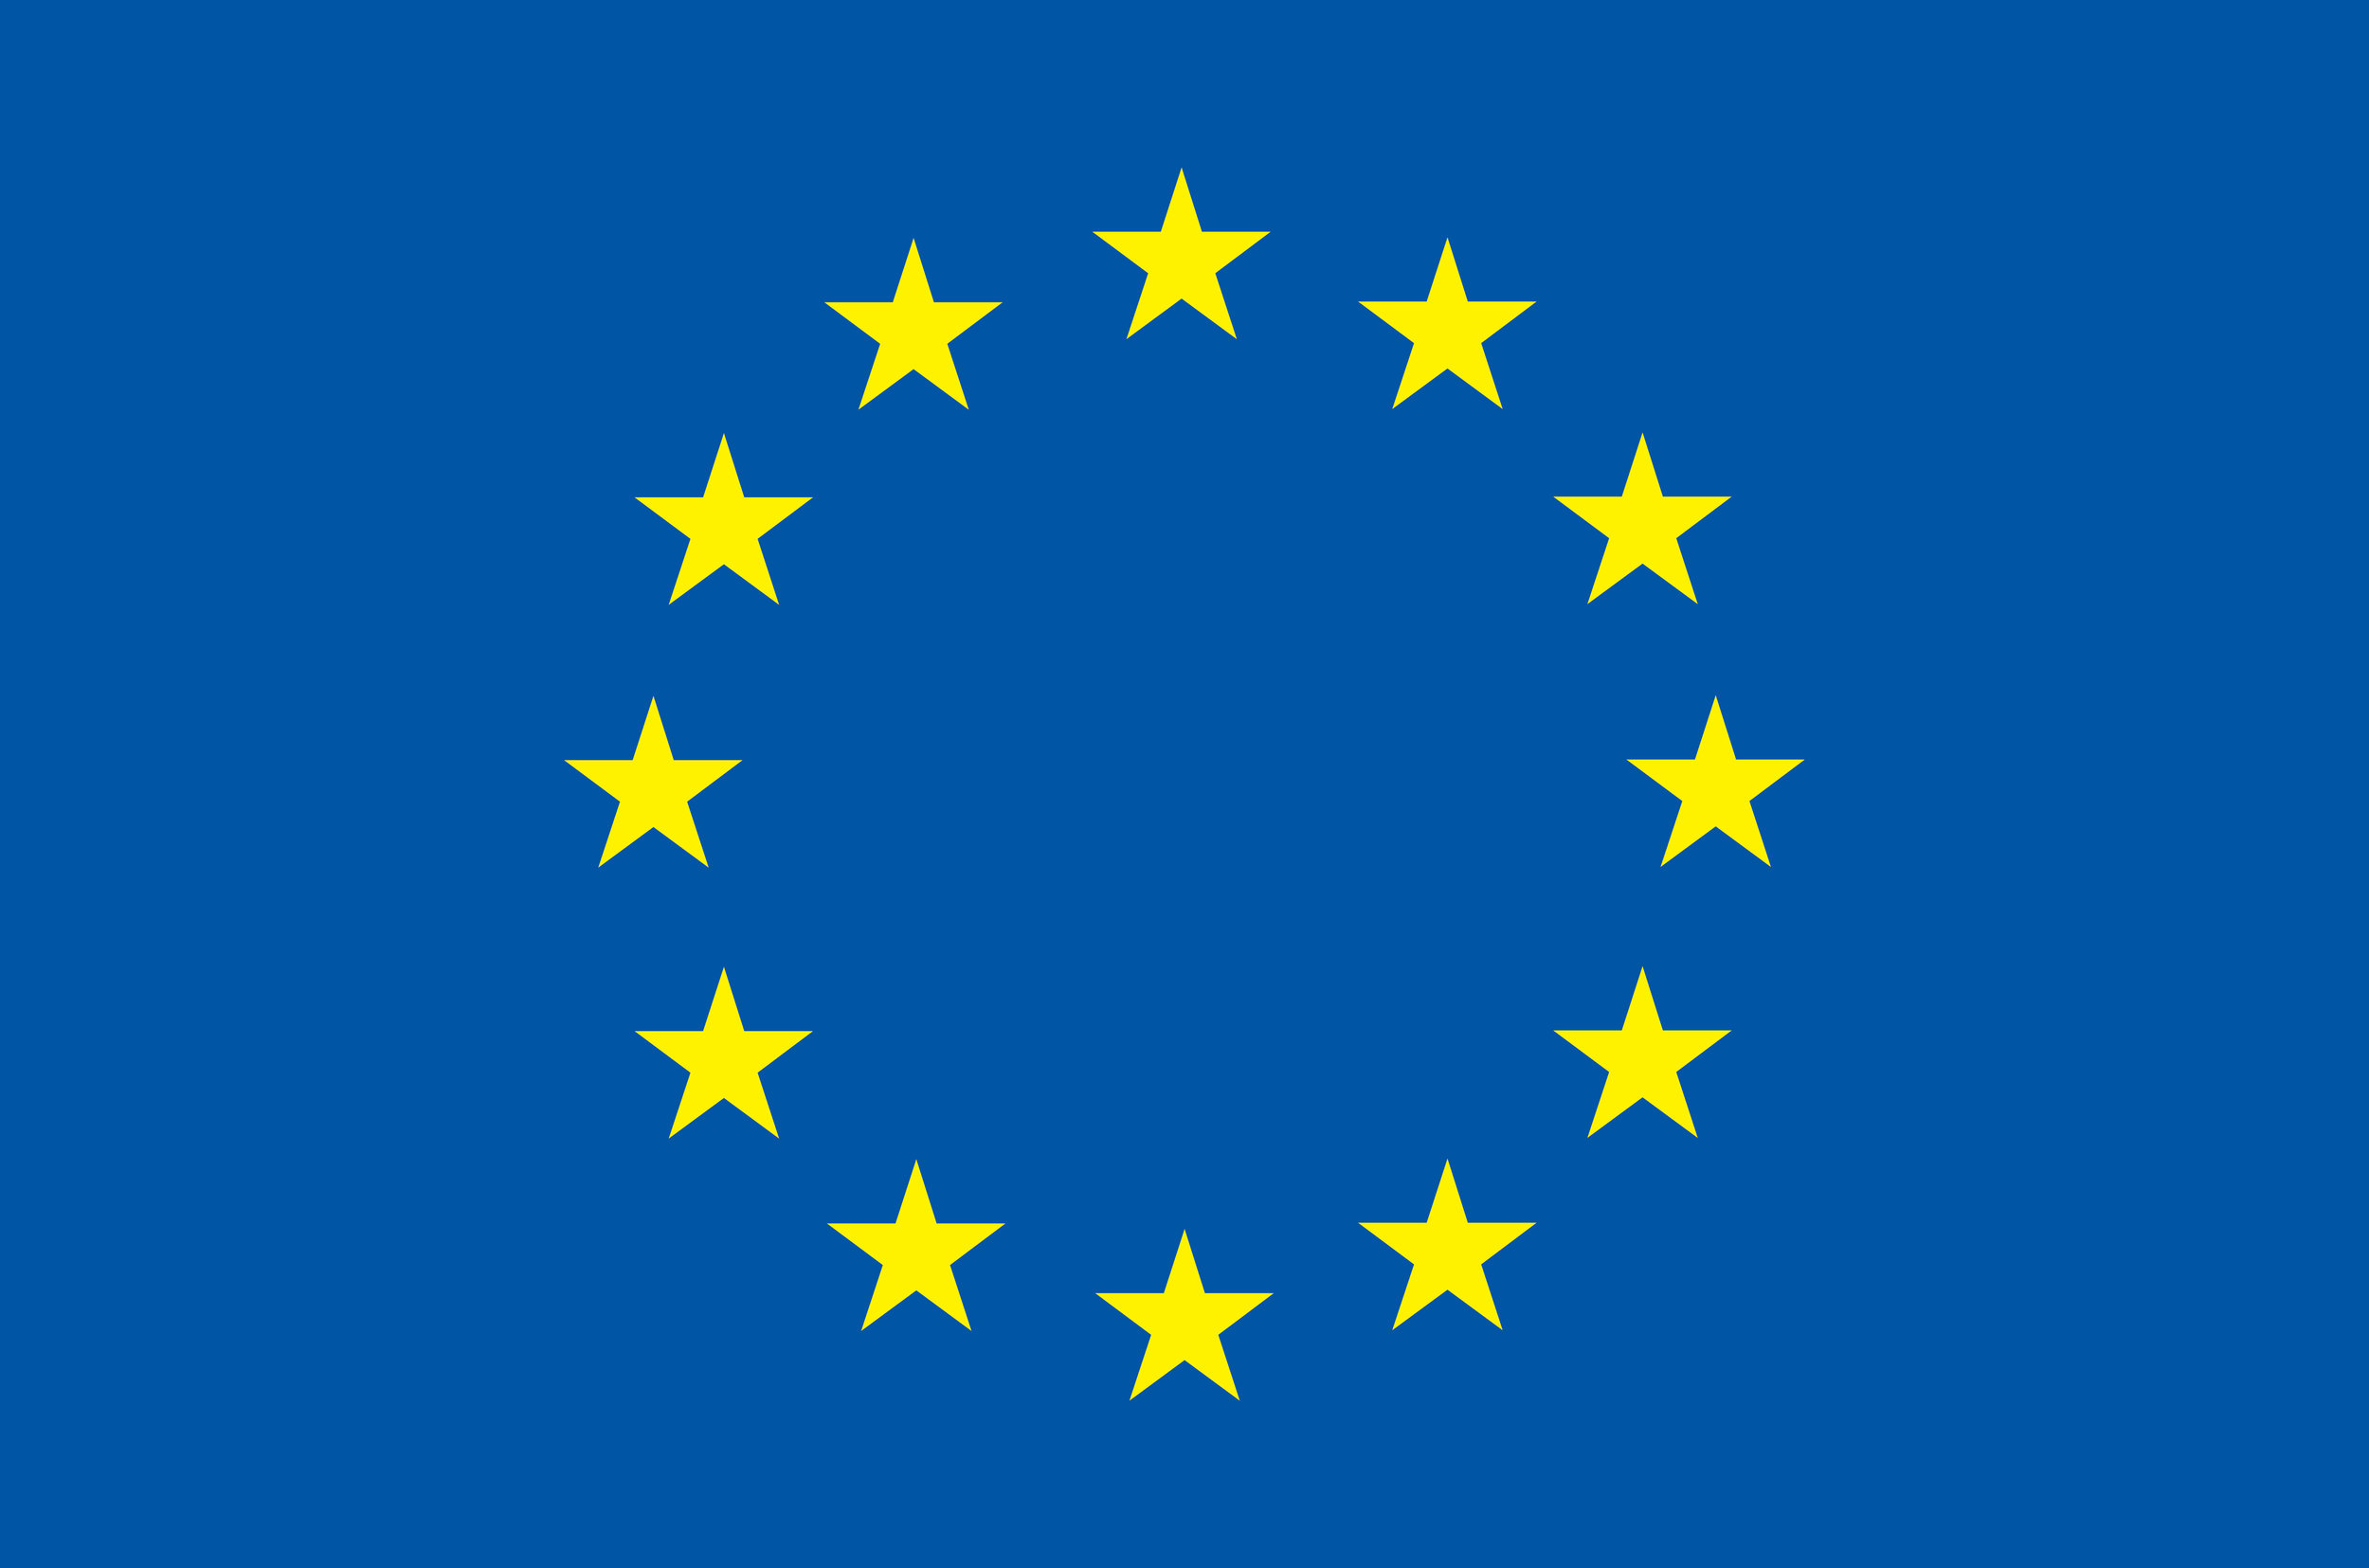 EU flag low res.jpg